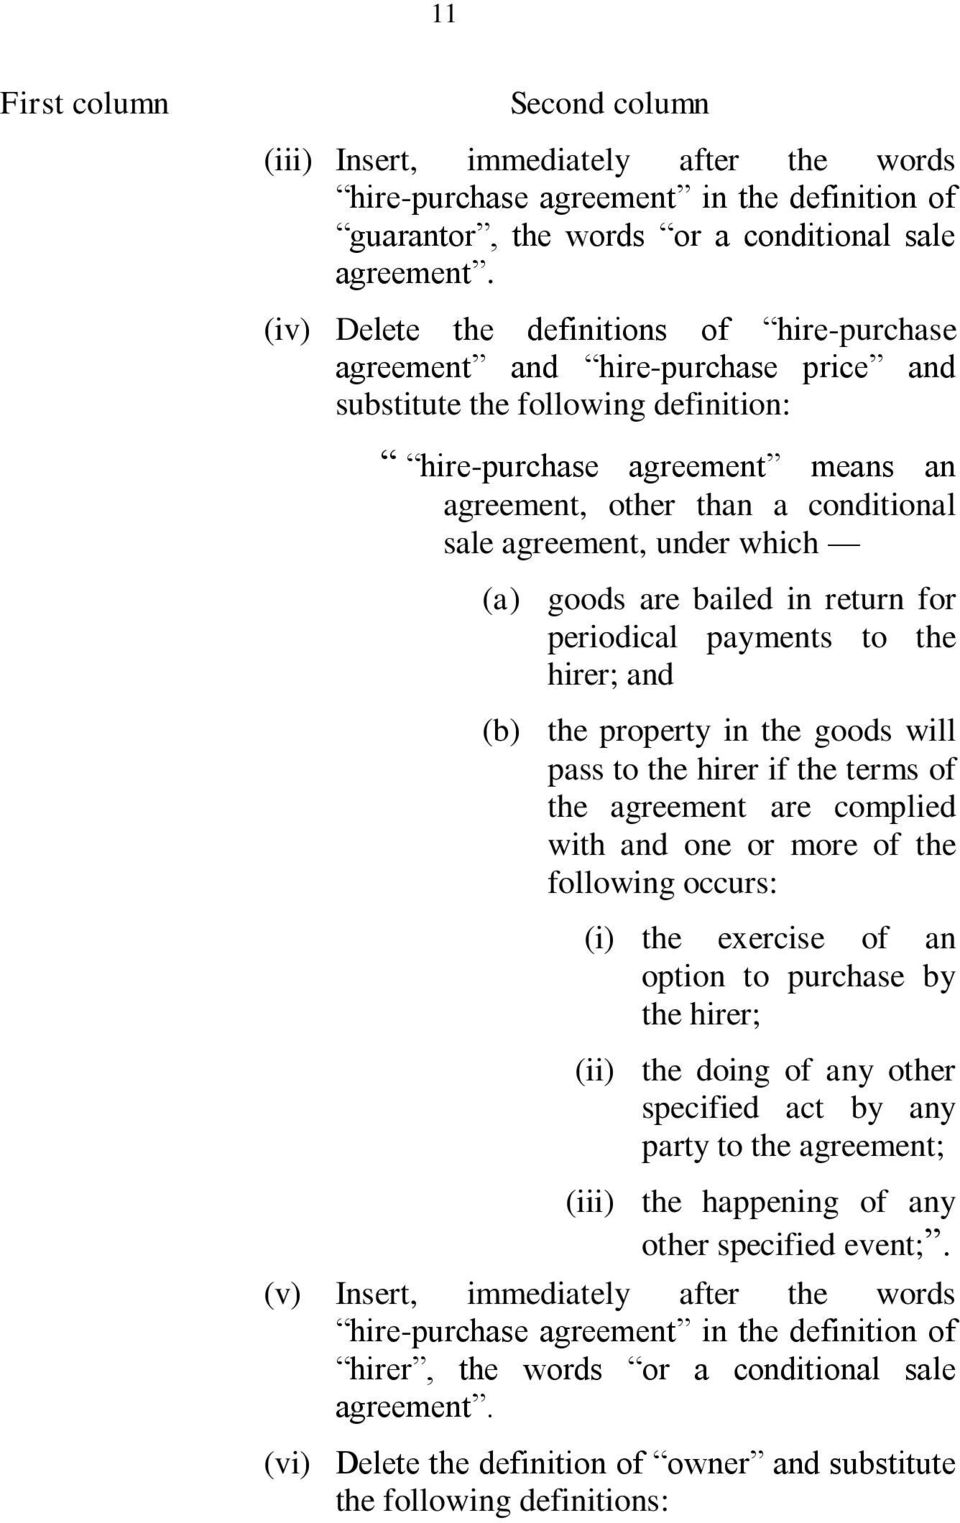 agreement, under which goods are bailed in return for periodical payments to the hirer; and the property in the goods will pass to the hirer if the terms of the agreement are complied with and one or